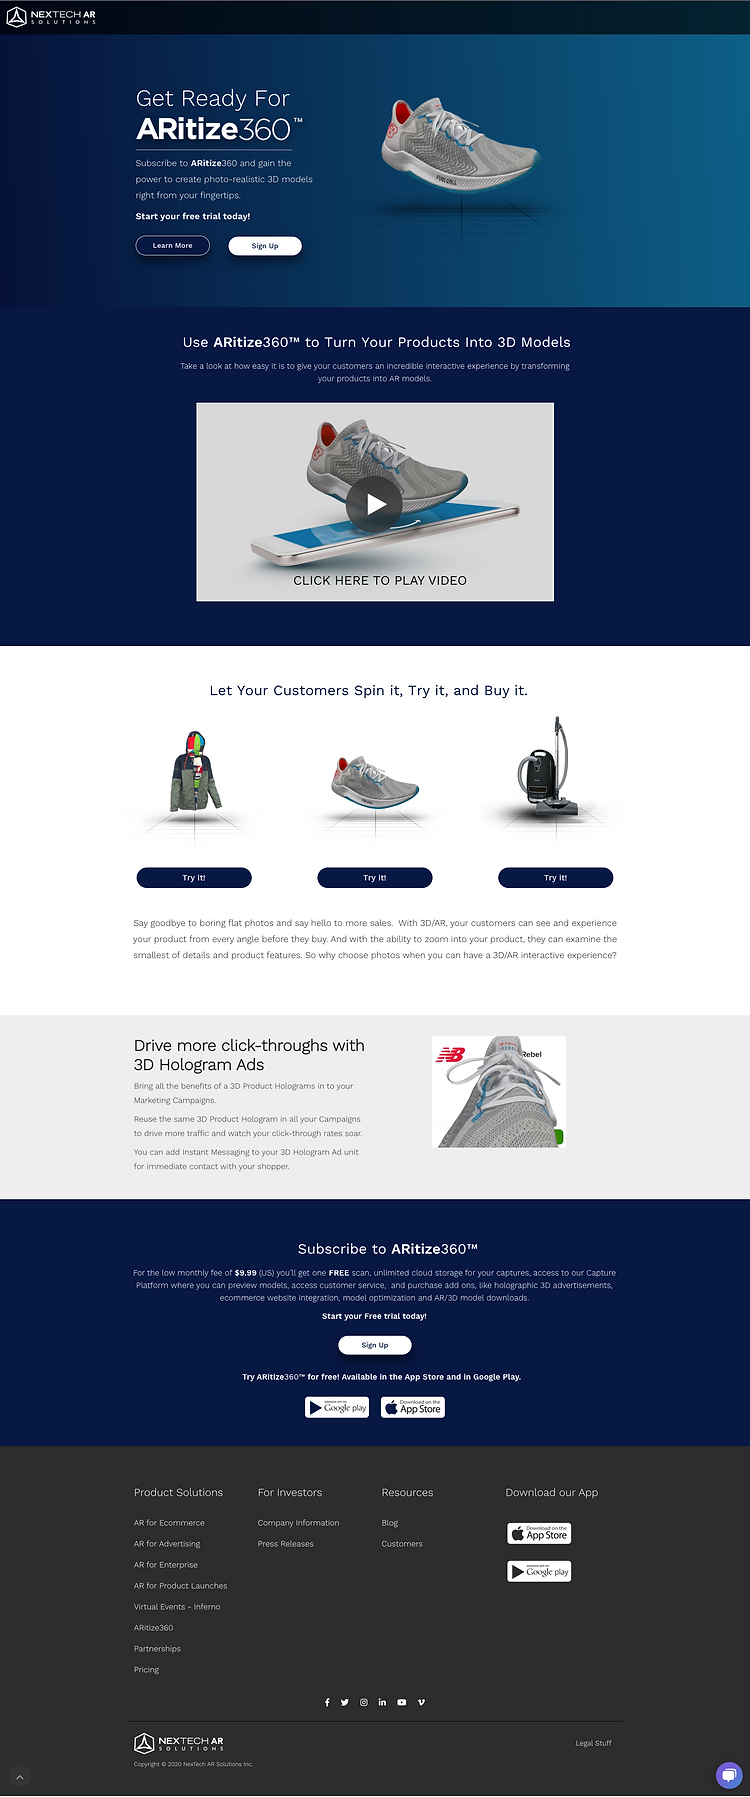 ARitize marketing page with subscribe pricing.png